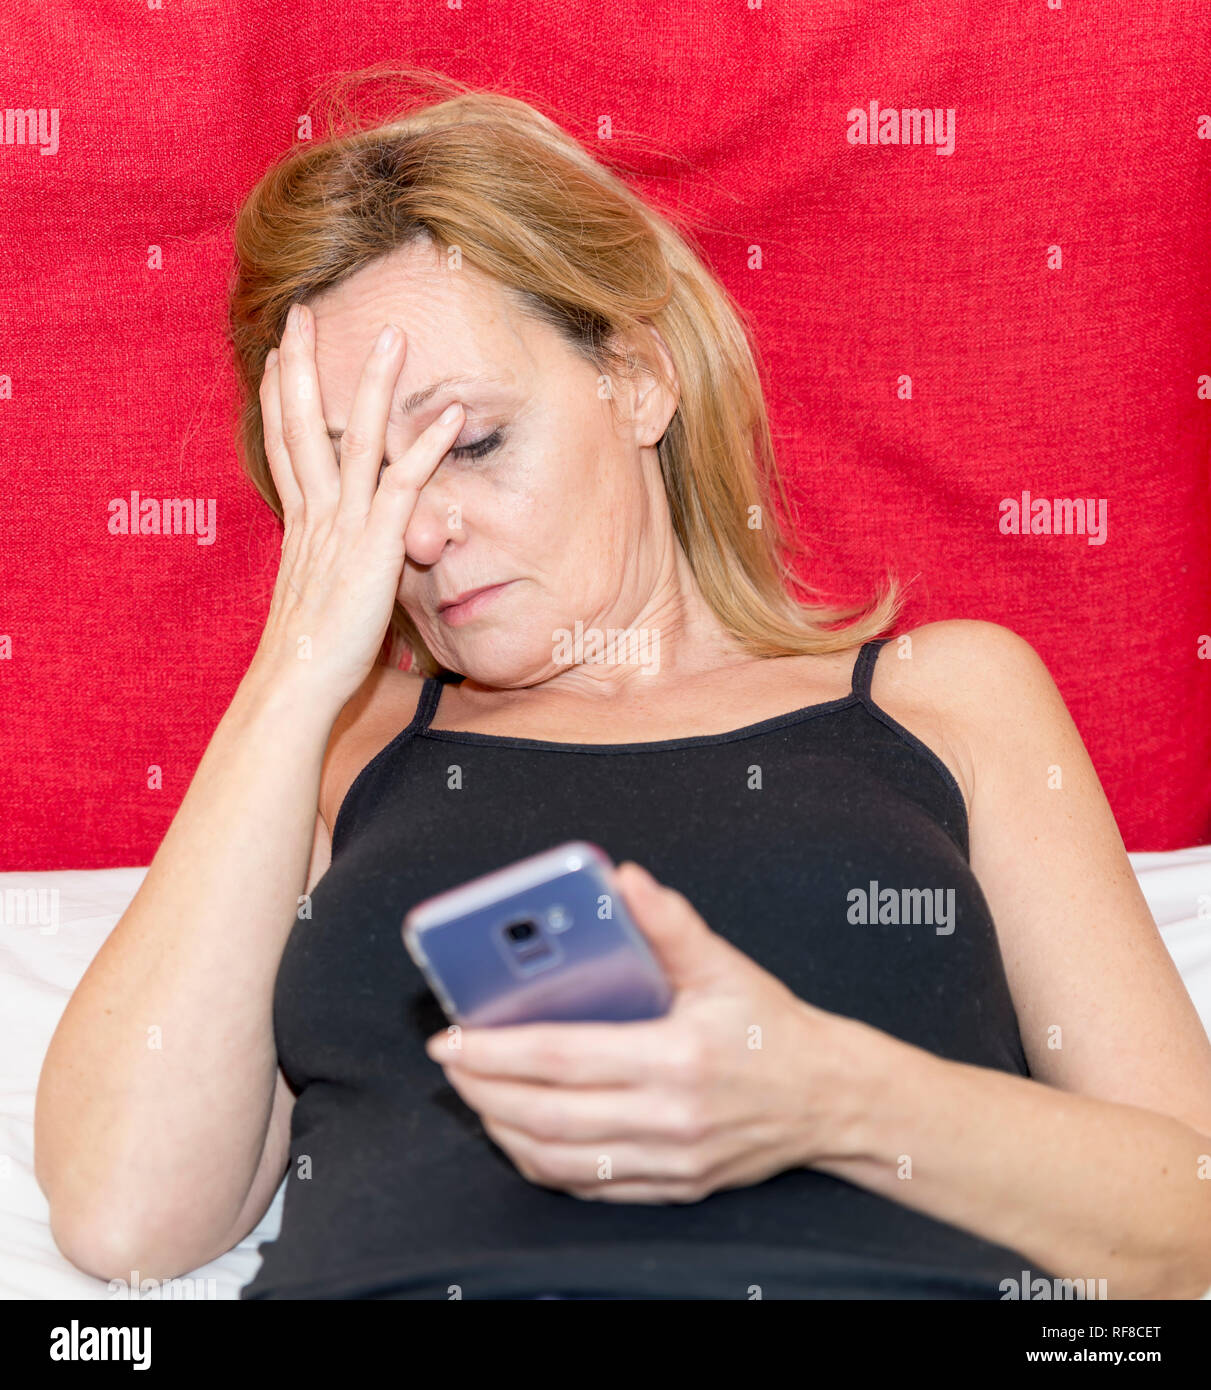 Desperate woman covers her face with one hand while in the other she holds a smartphone - Stock Image